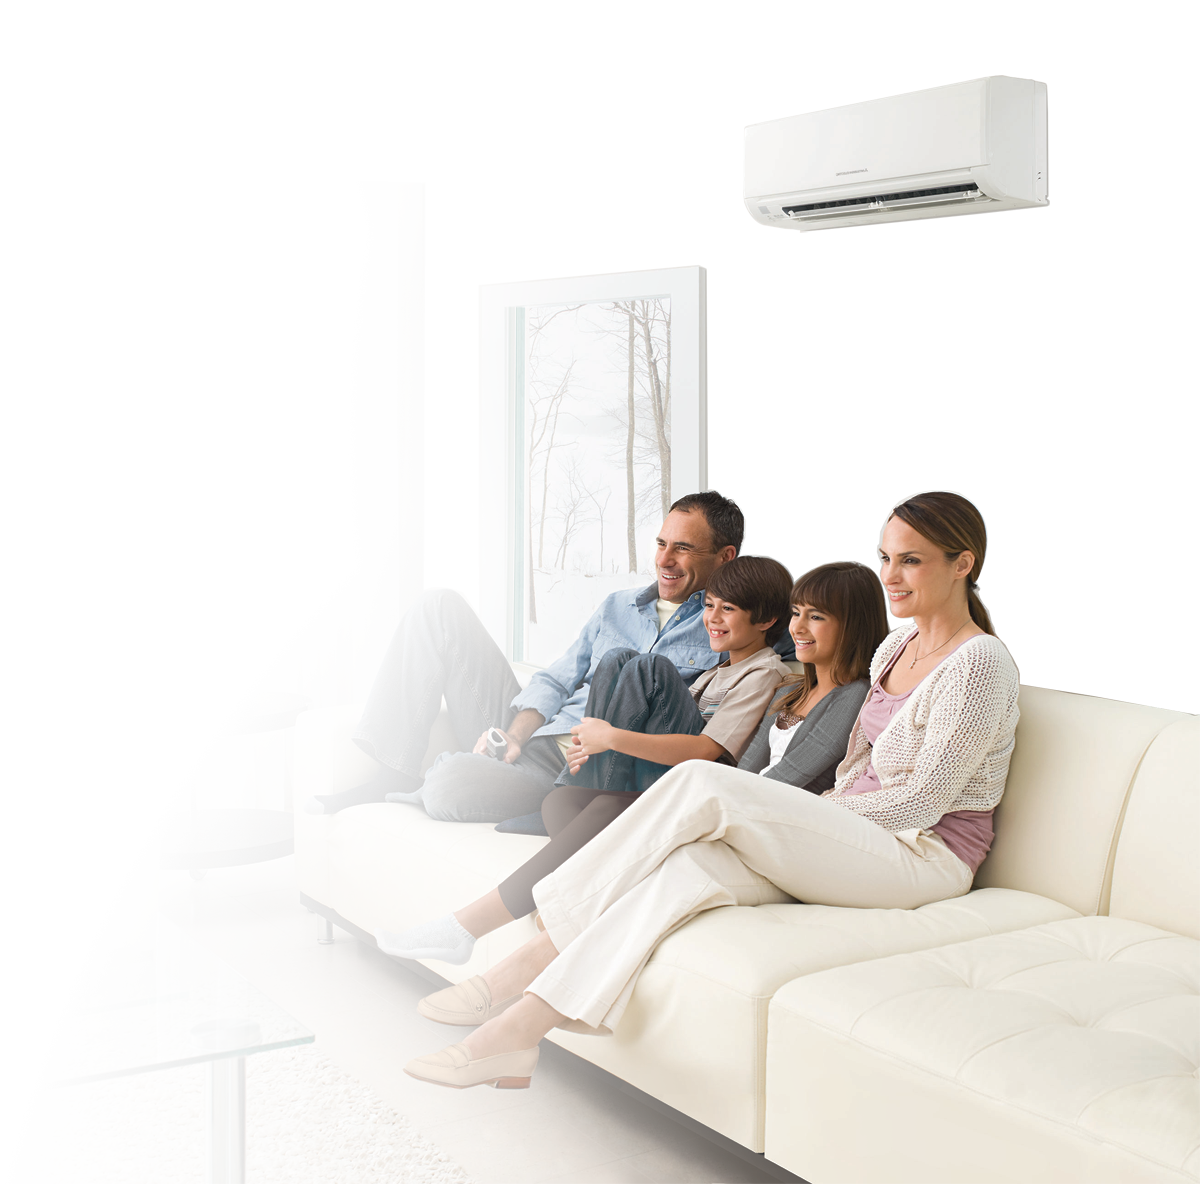 Most Efficient Heating System New England